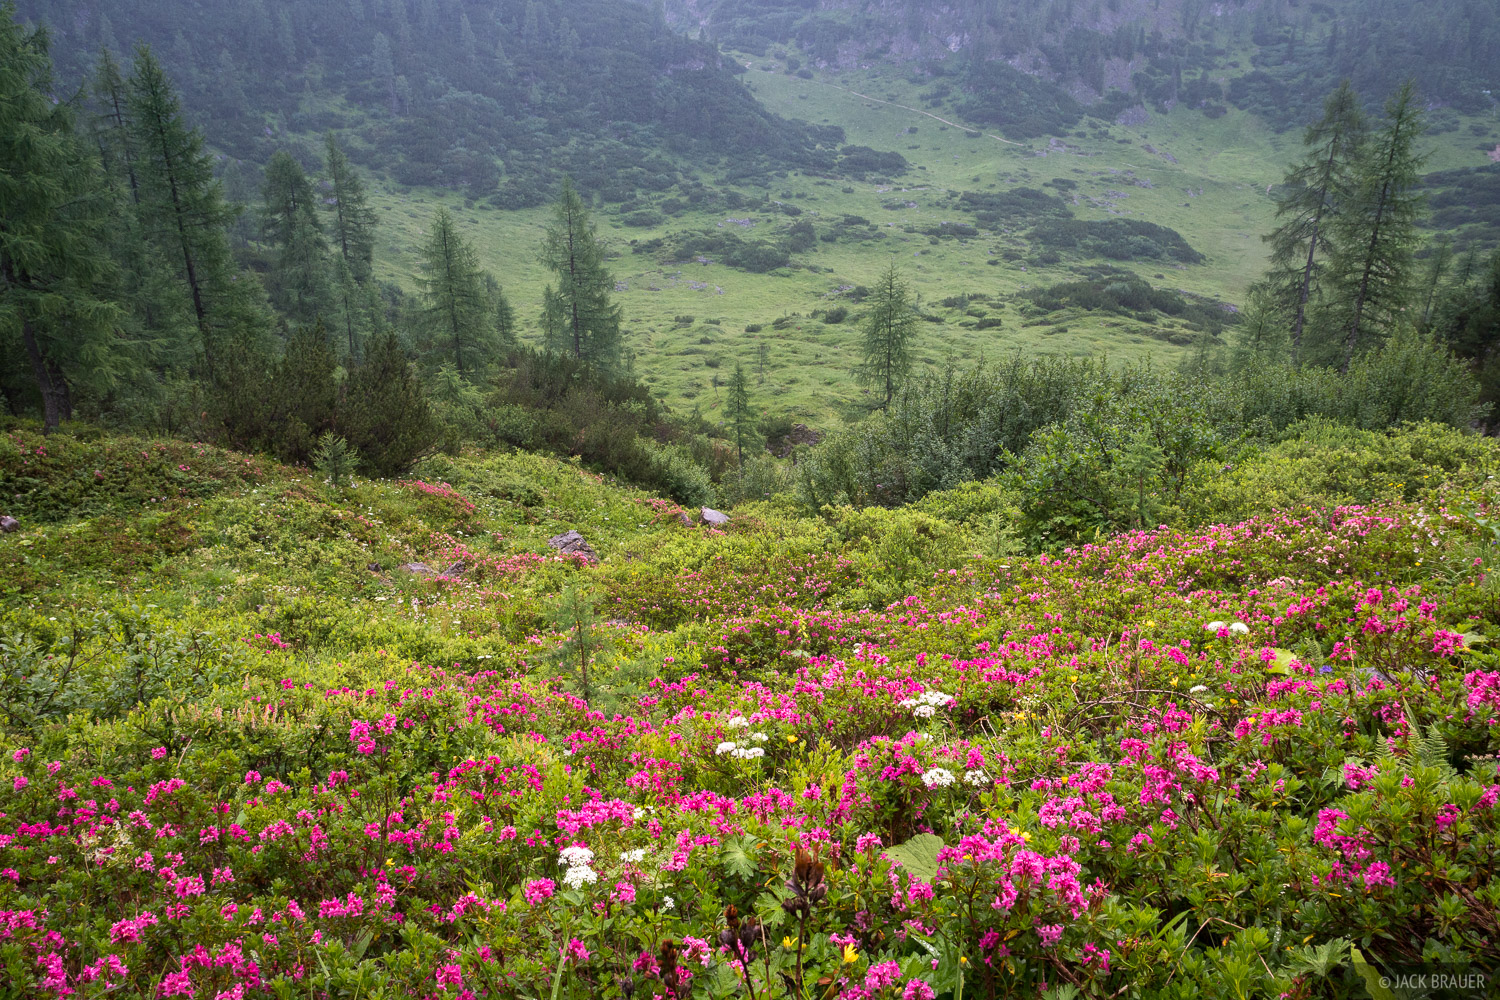 Berchtesgaden, Europe, Germany, wildflowers, alpenrose, Alps, photo